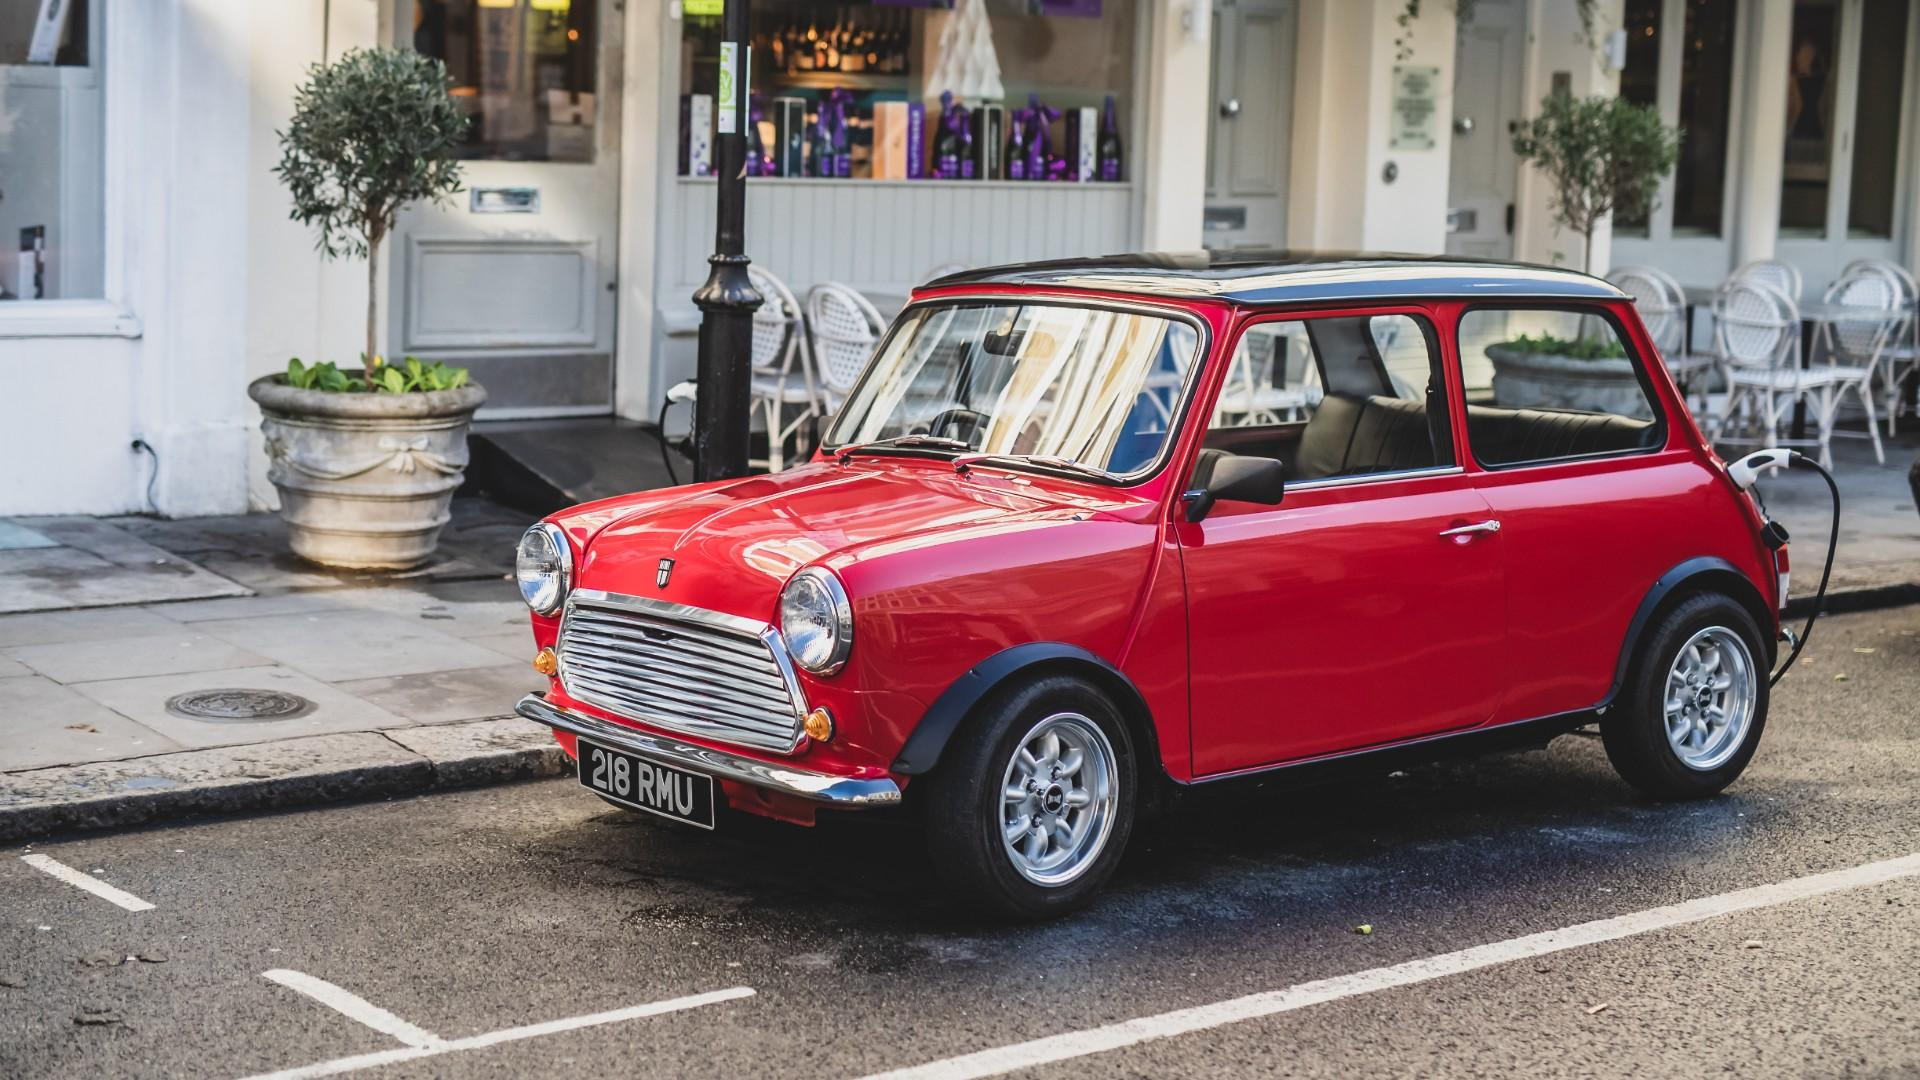 This Classic Mini Electric Conversion Costs $100,000